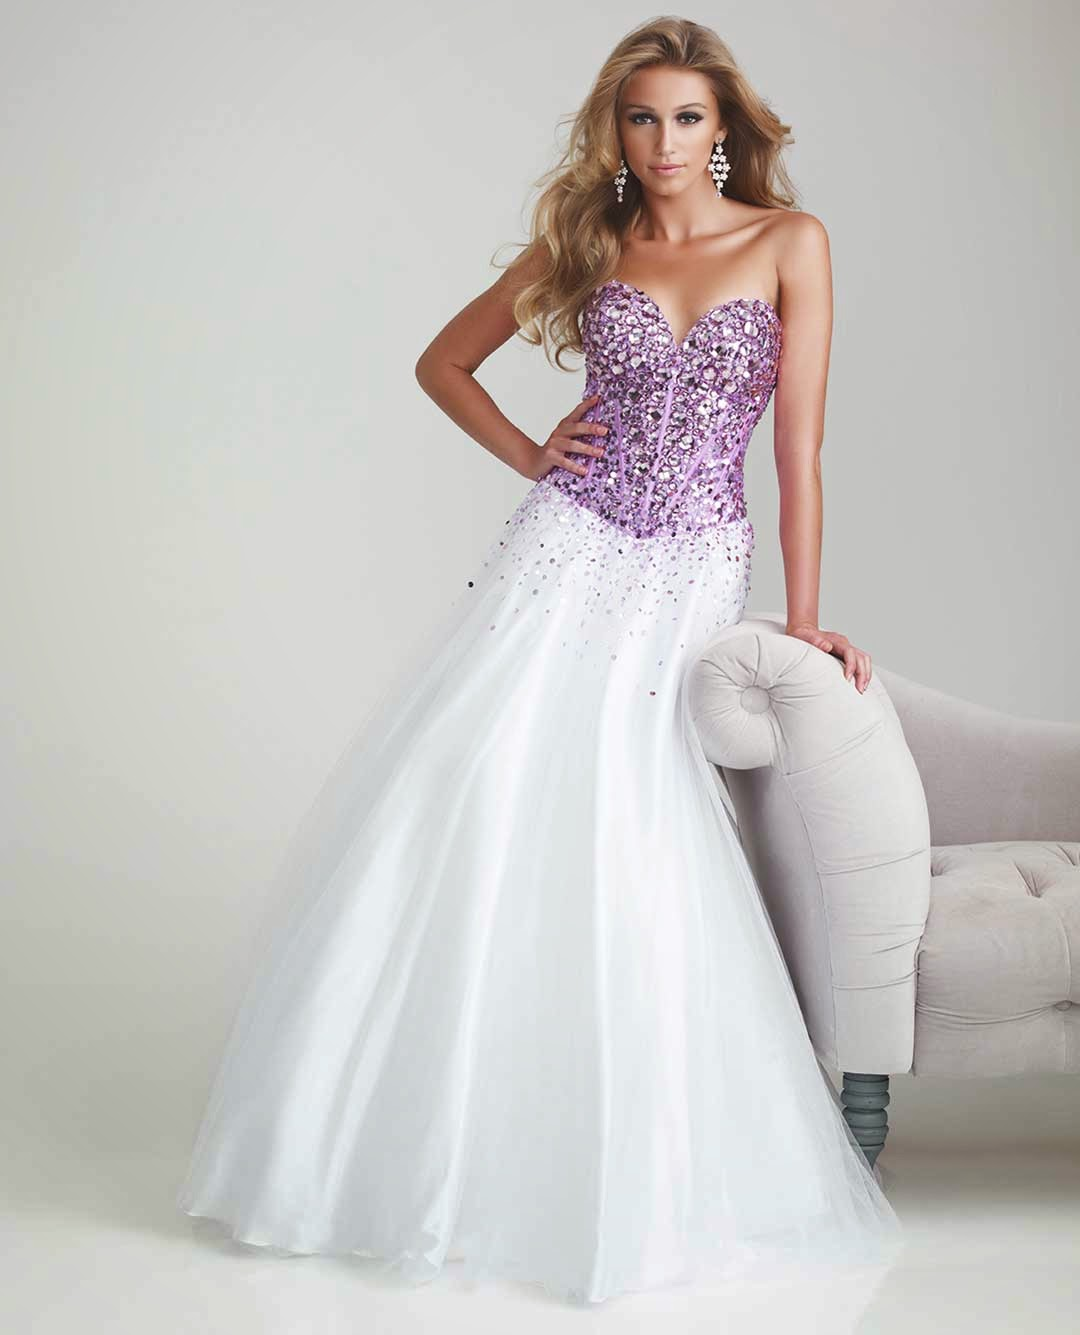 Wedding White Dresses: Purple And White Wedding Dresses Concepts Ideas